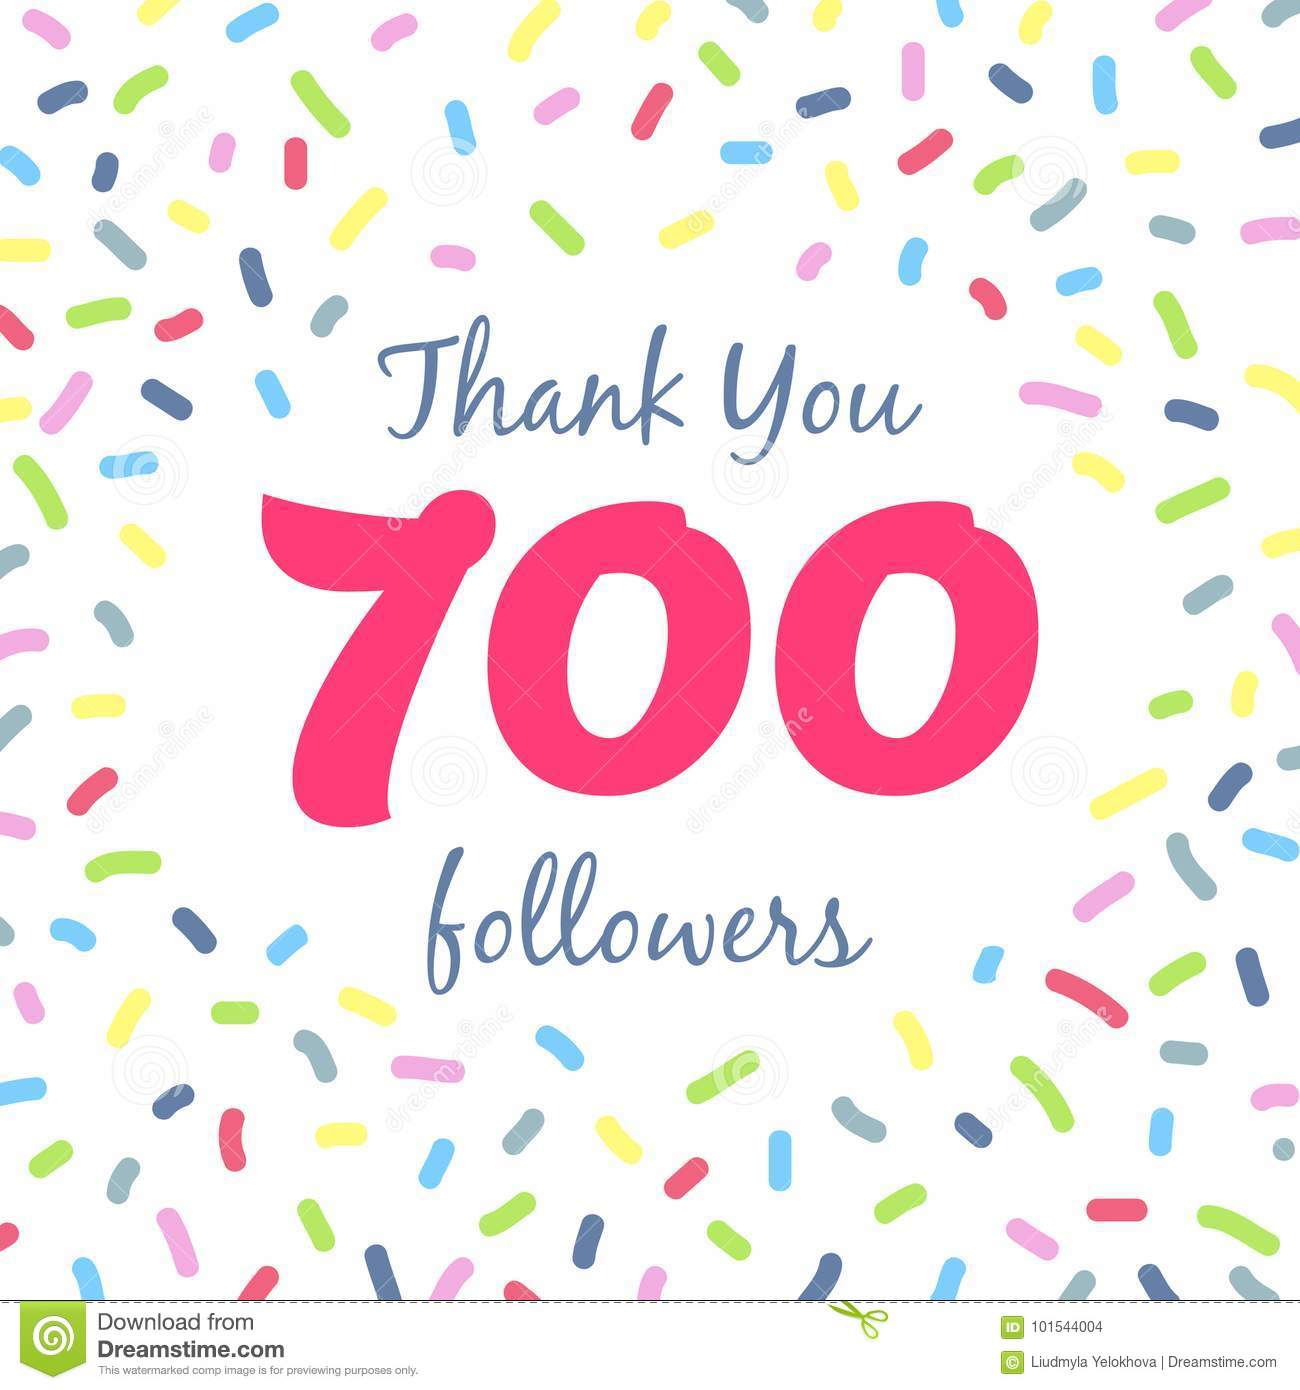 31c27cd2e92 Thank you 700 followers network post. Vector digital illustration. Celebration  of seven hundreds subscribers